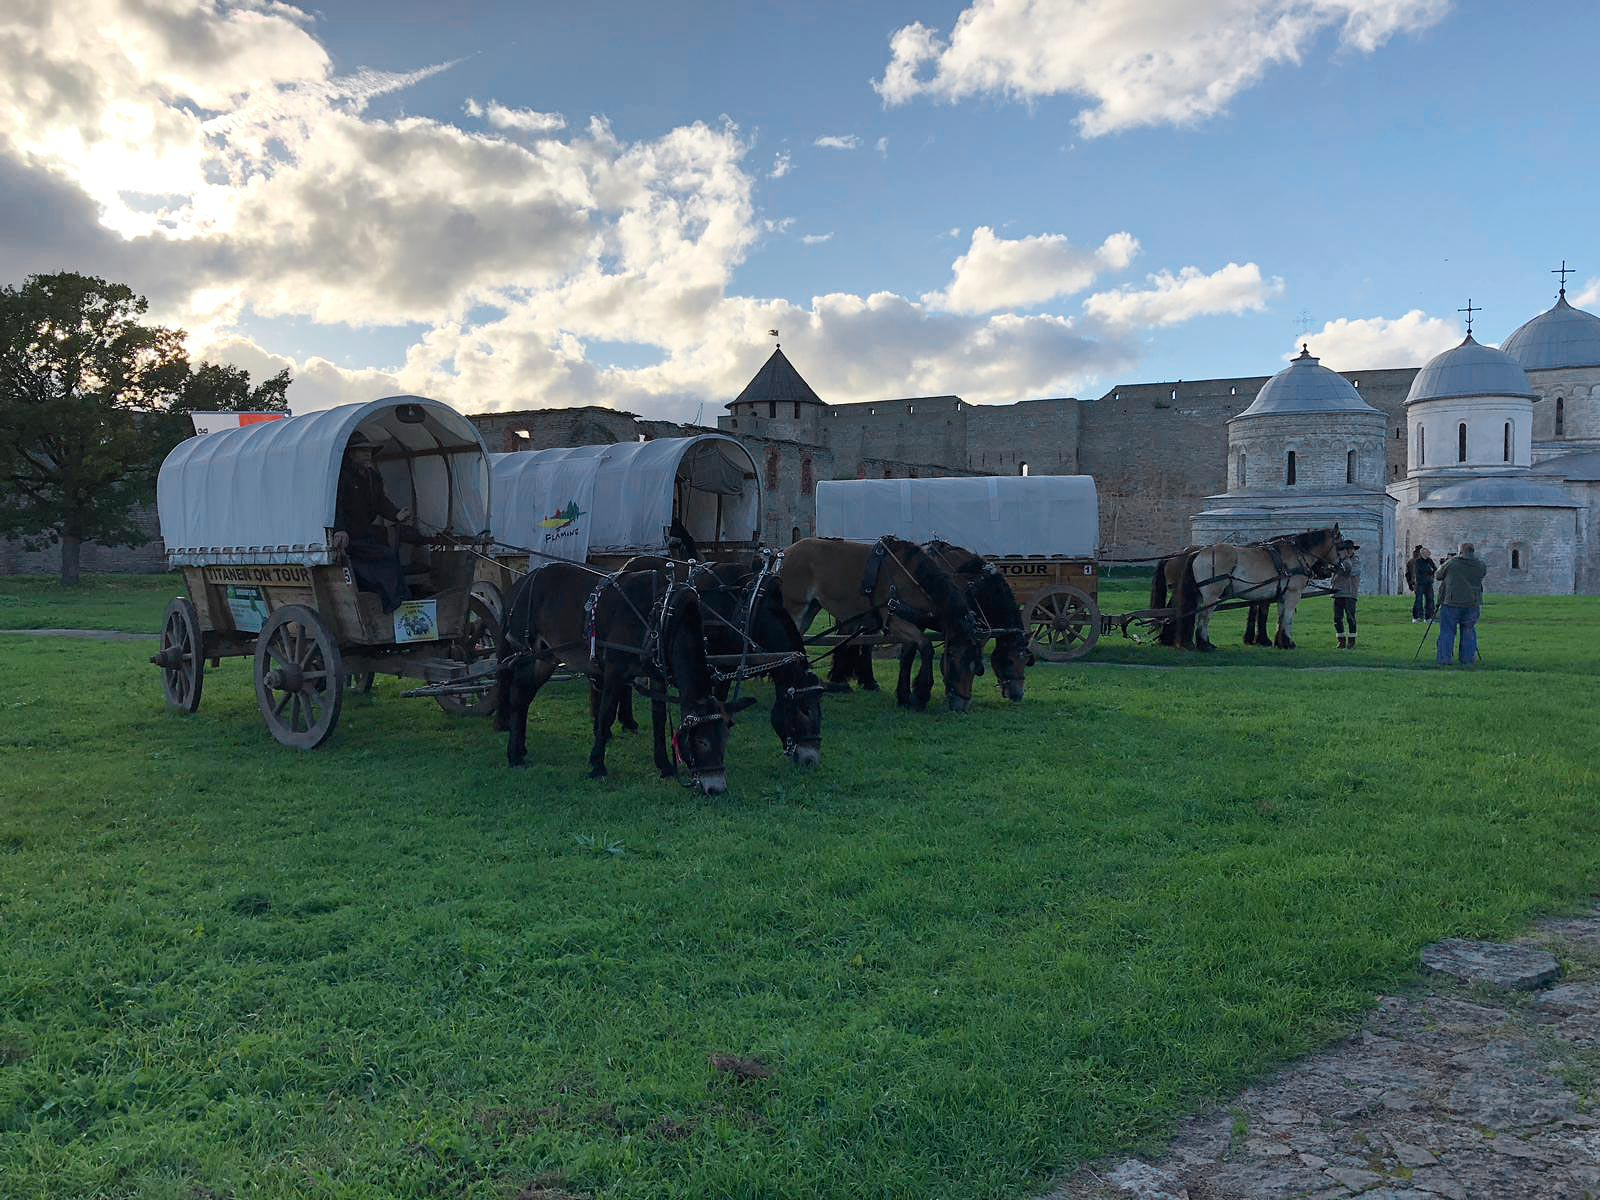 Burg Ivangorod - Titanen on tour in Russland